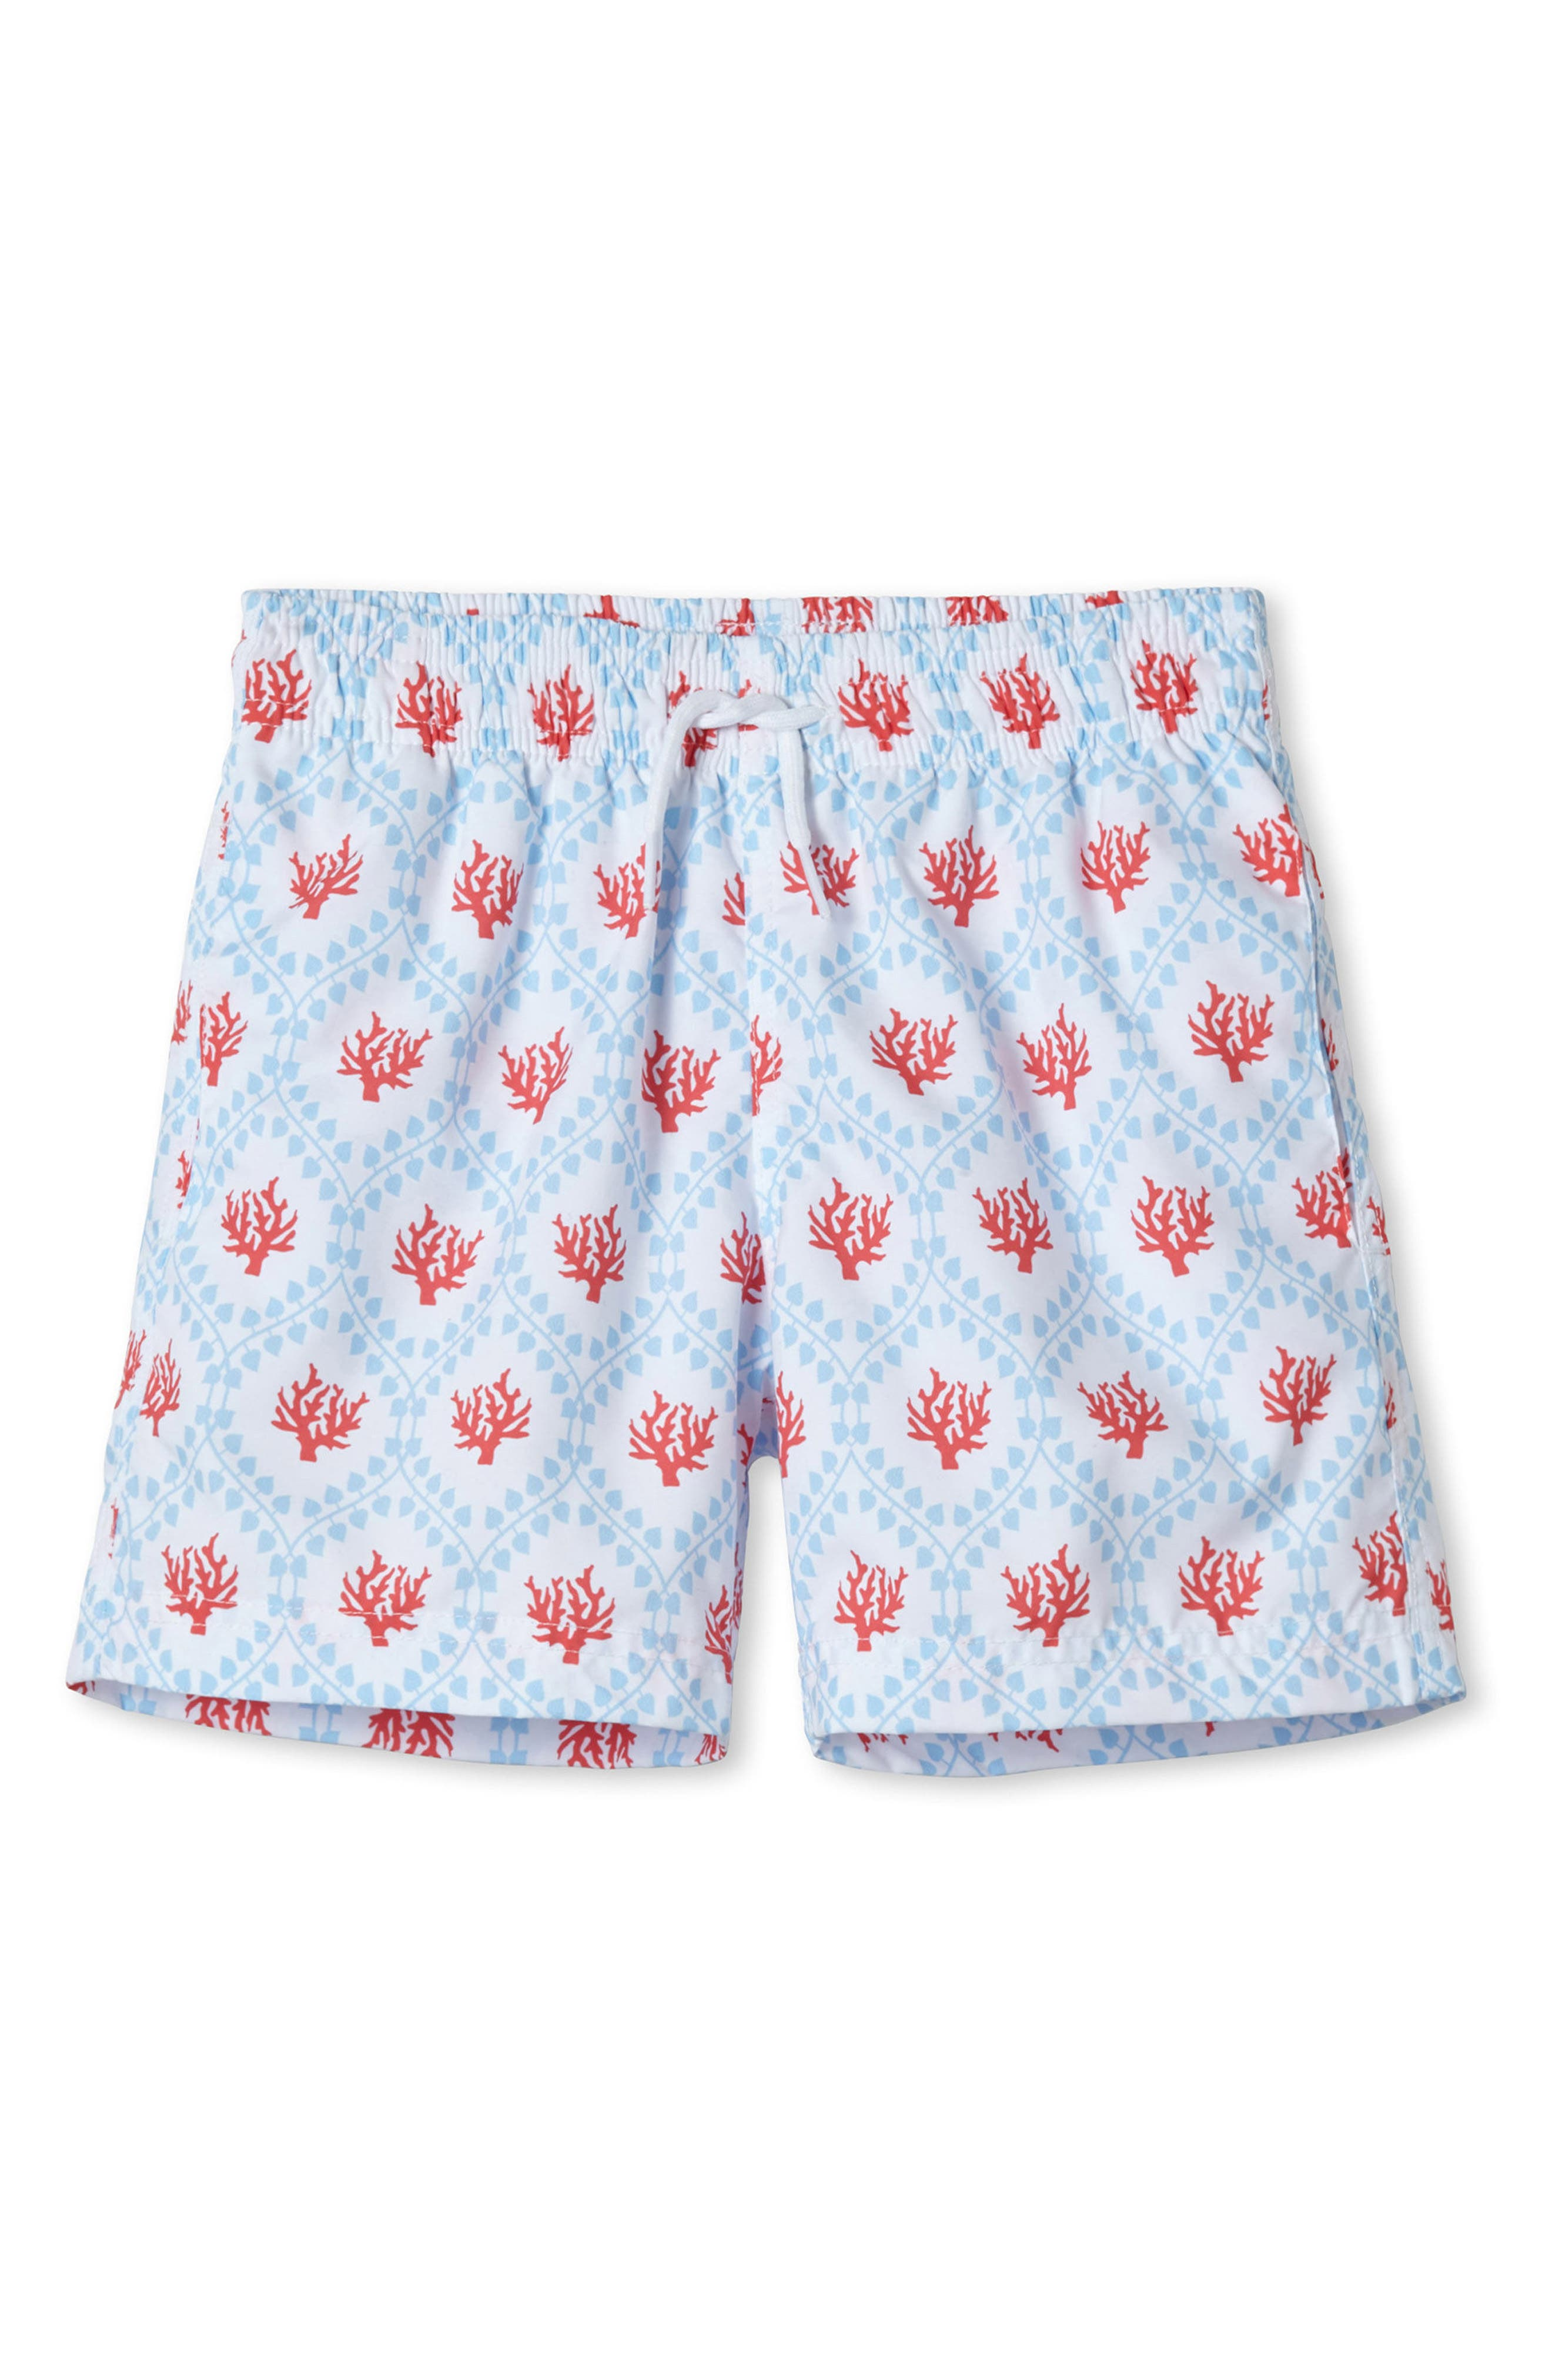 Red Coral Swim Trunks,                             Main thumbnail 1, color,                             400